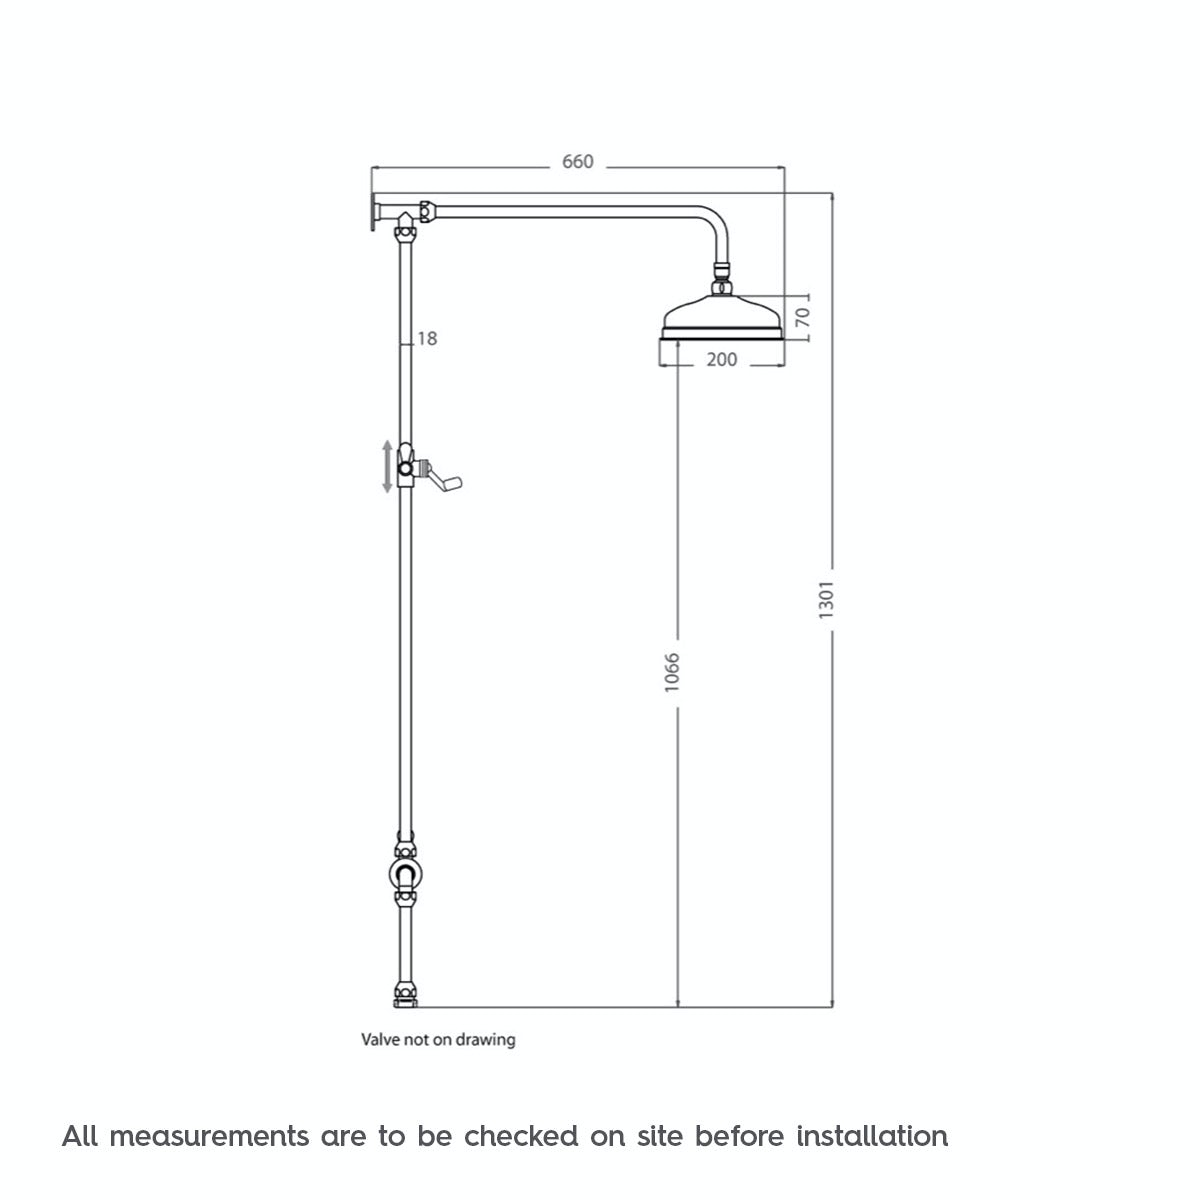 Dimensions for Traditional rain can shower head riser shower system